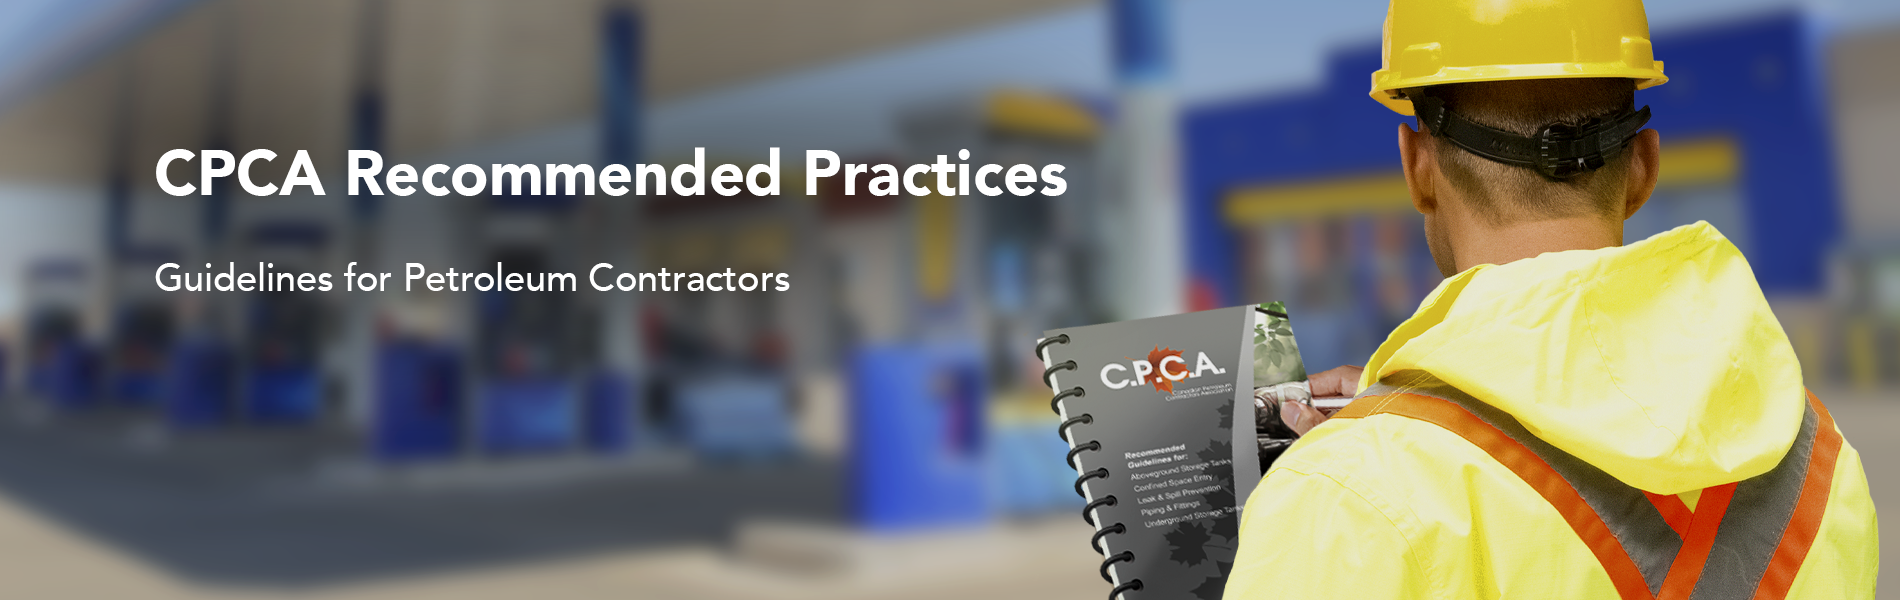 CPCA Recommended Practices guidelines for Petroleum Contractors